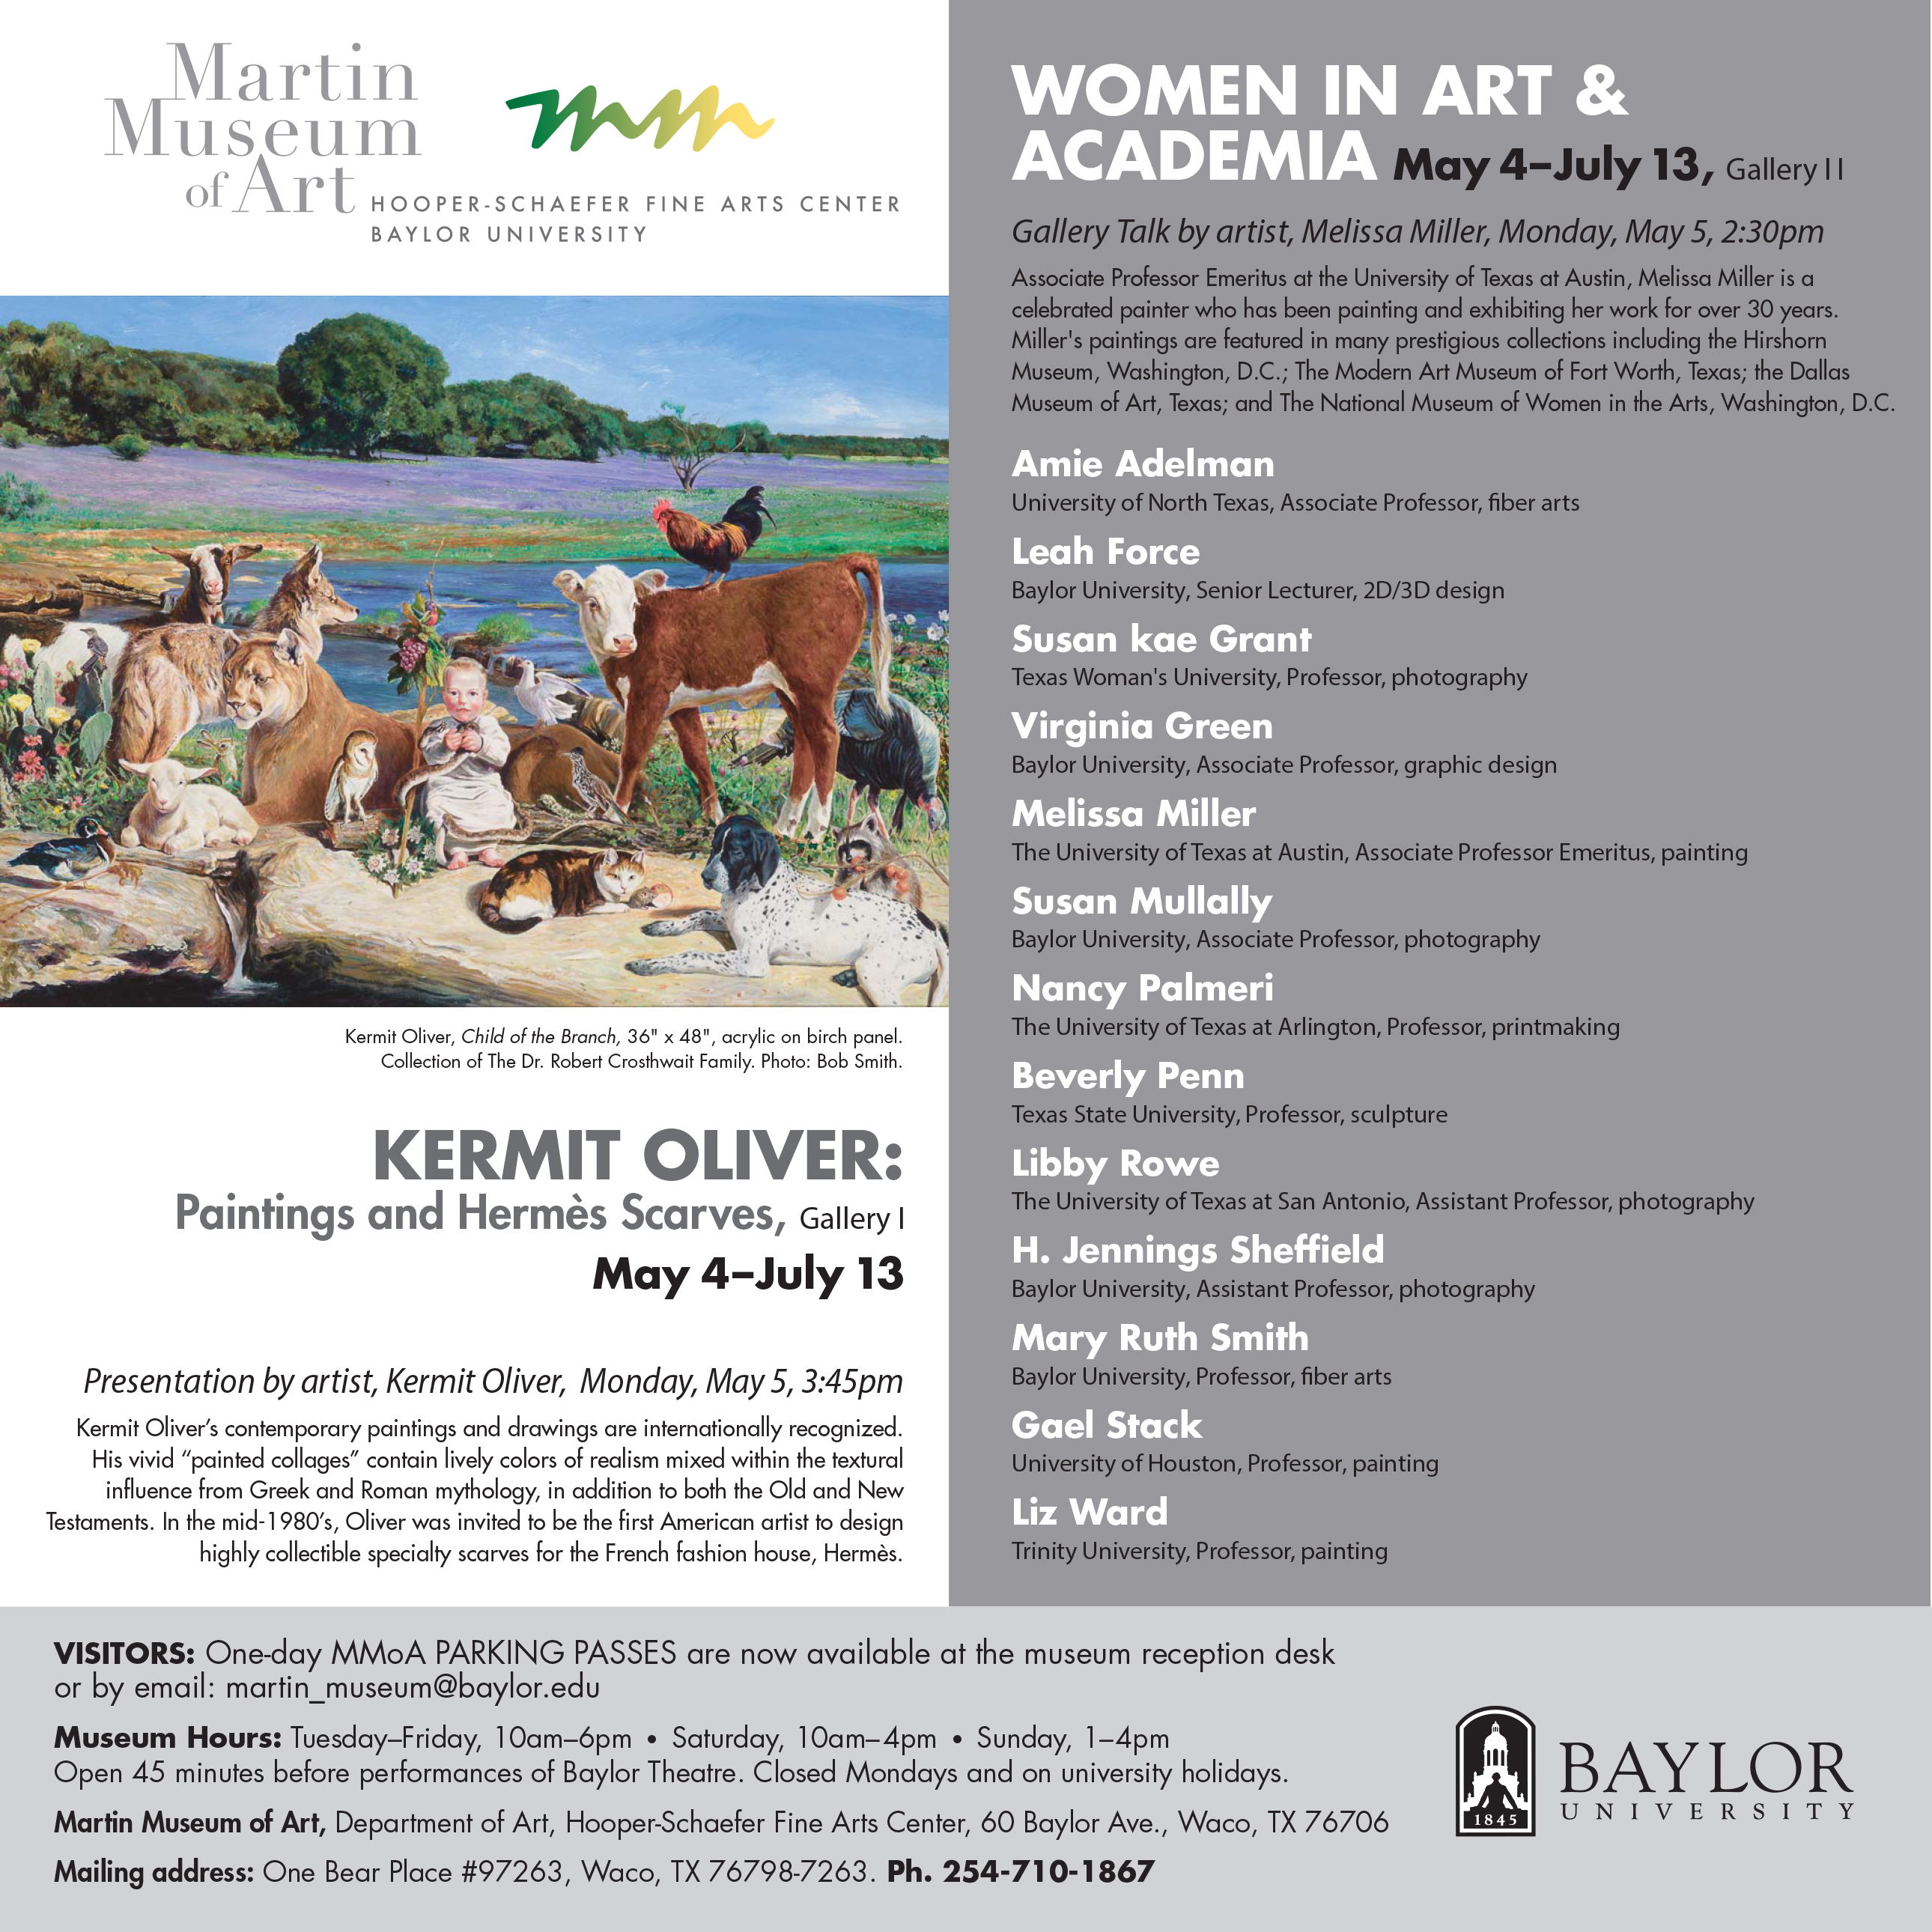 Kermit Oliver and Women in A&A Card, Spring 2014